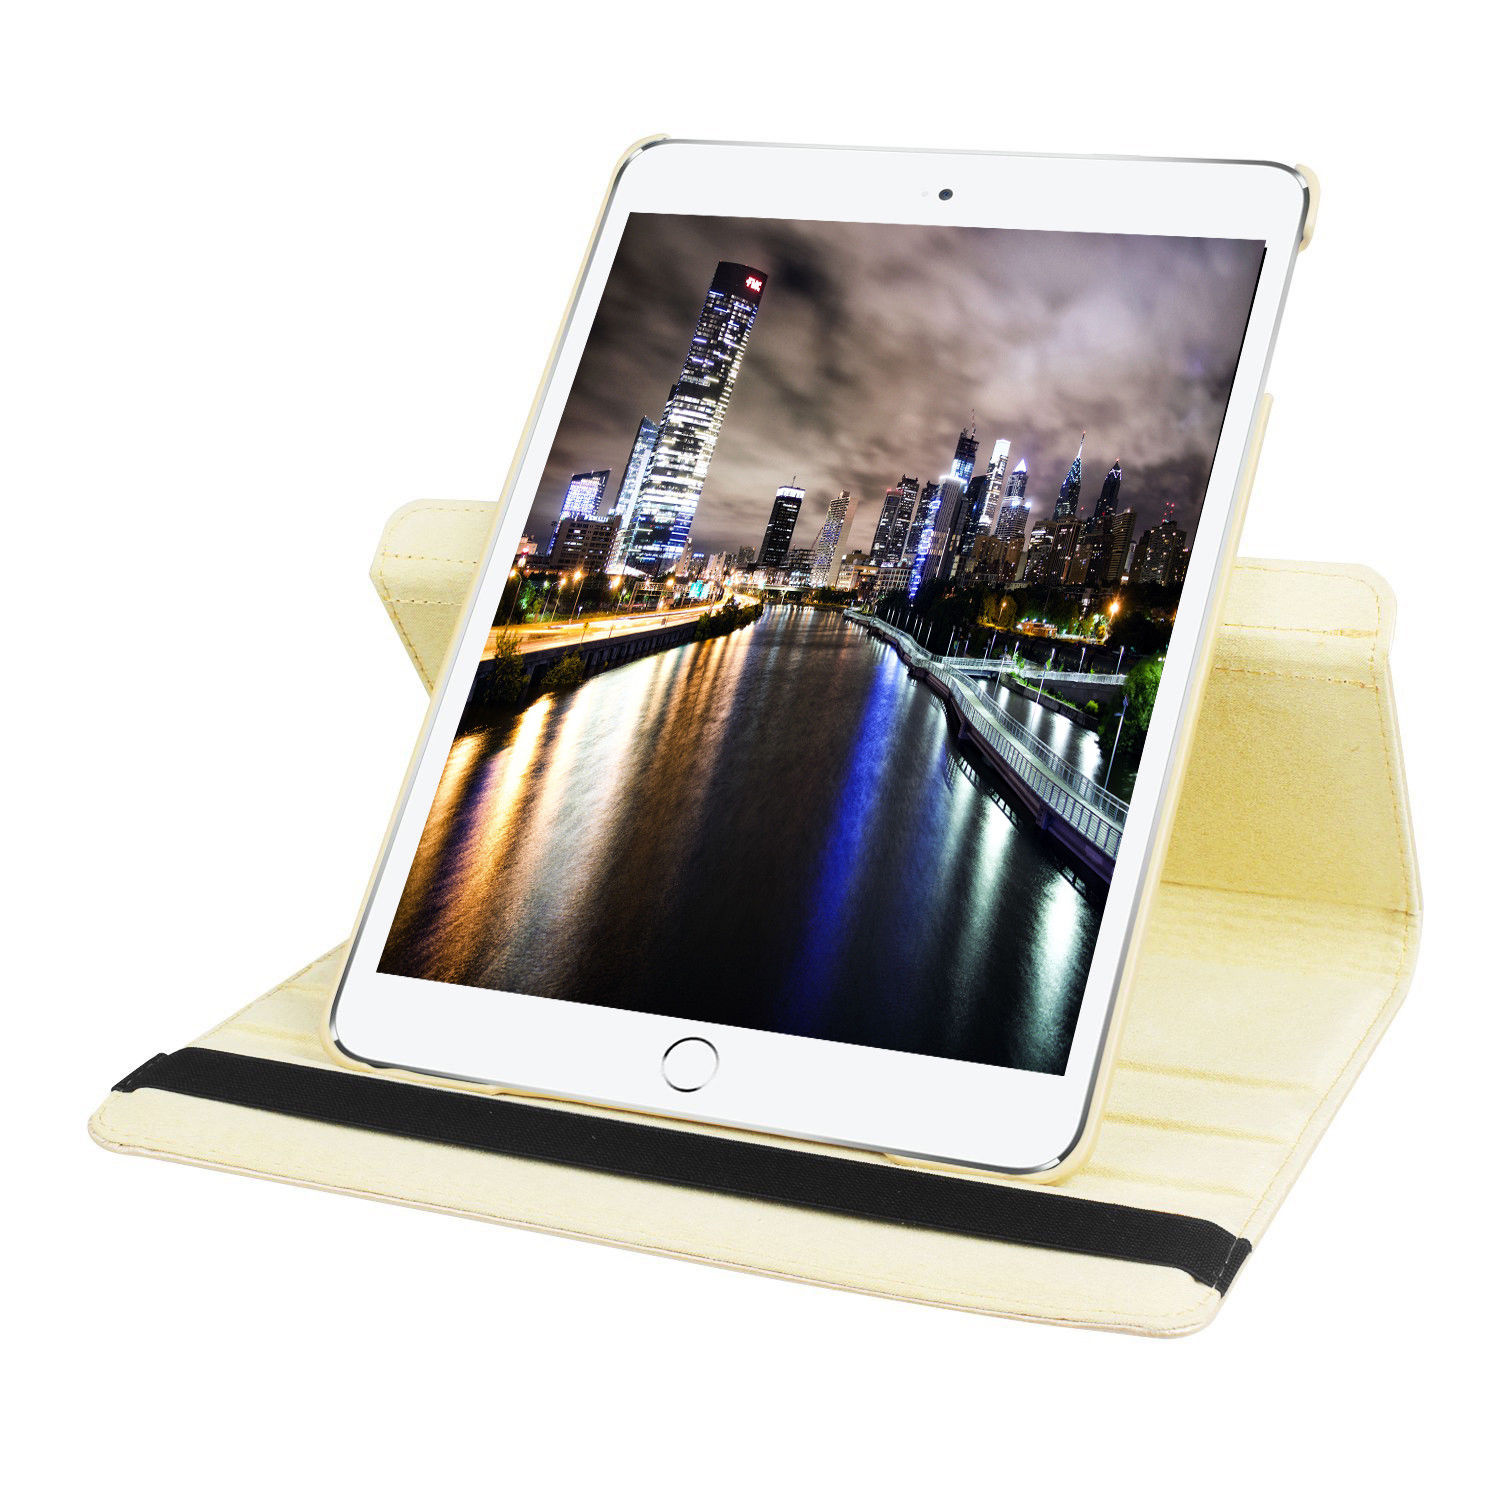 Custodia-per-Apple-iPad-Pro-2017-iPad-Air-3-10-5-Smart-Cover-Case-Custodia-Protettiva miniatura 34